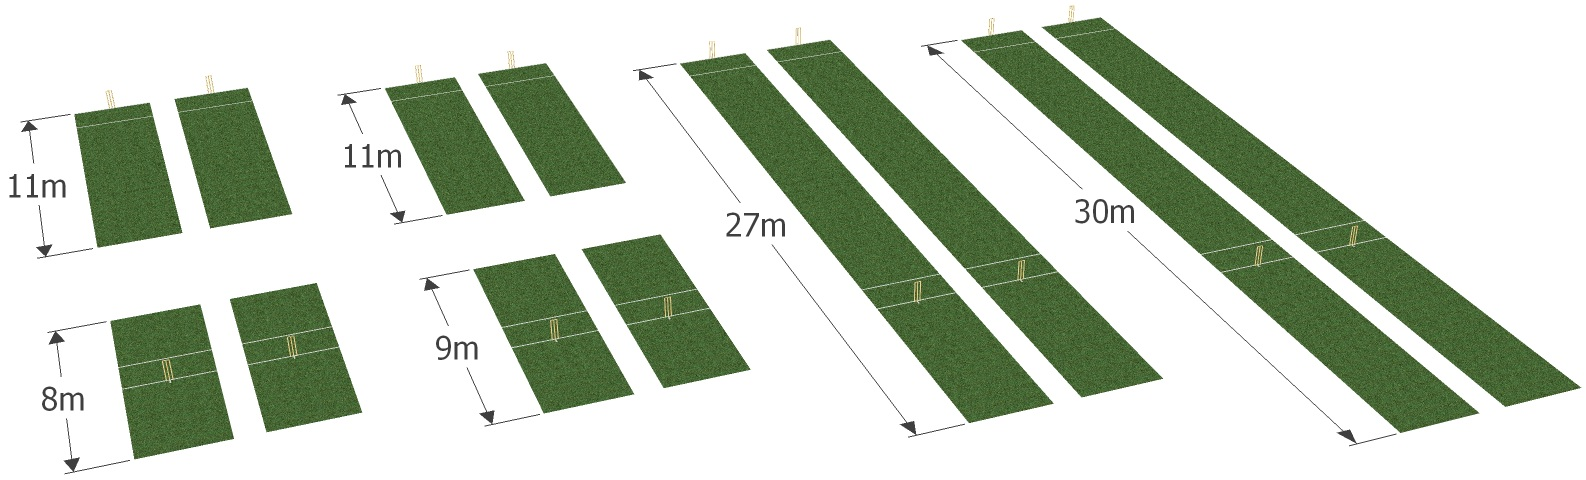 Pitch Configurations